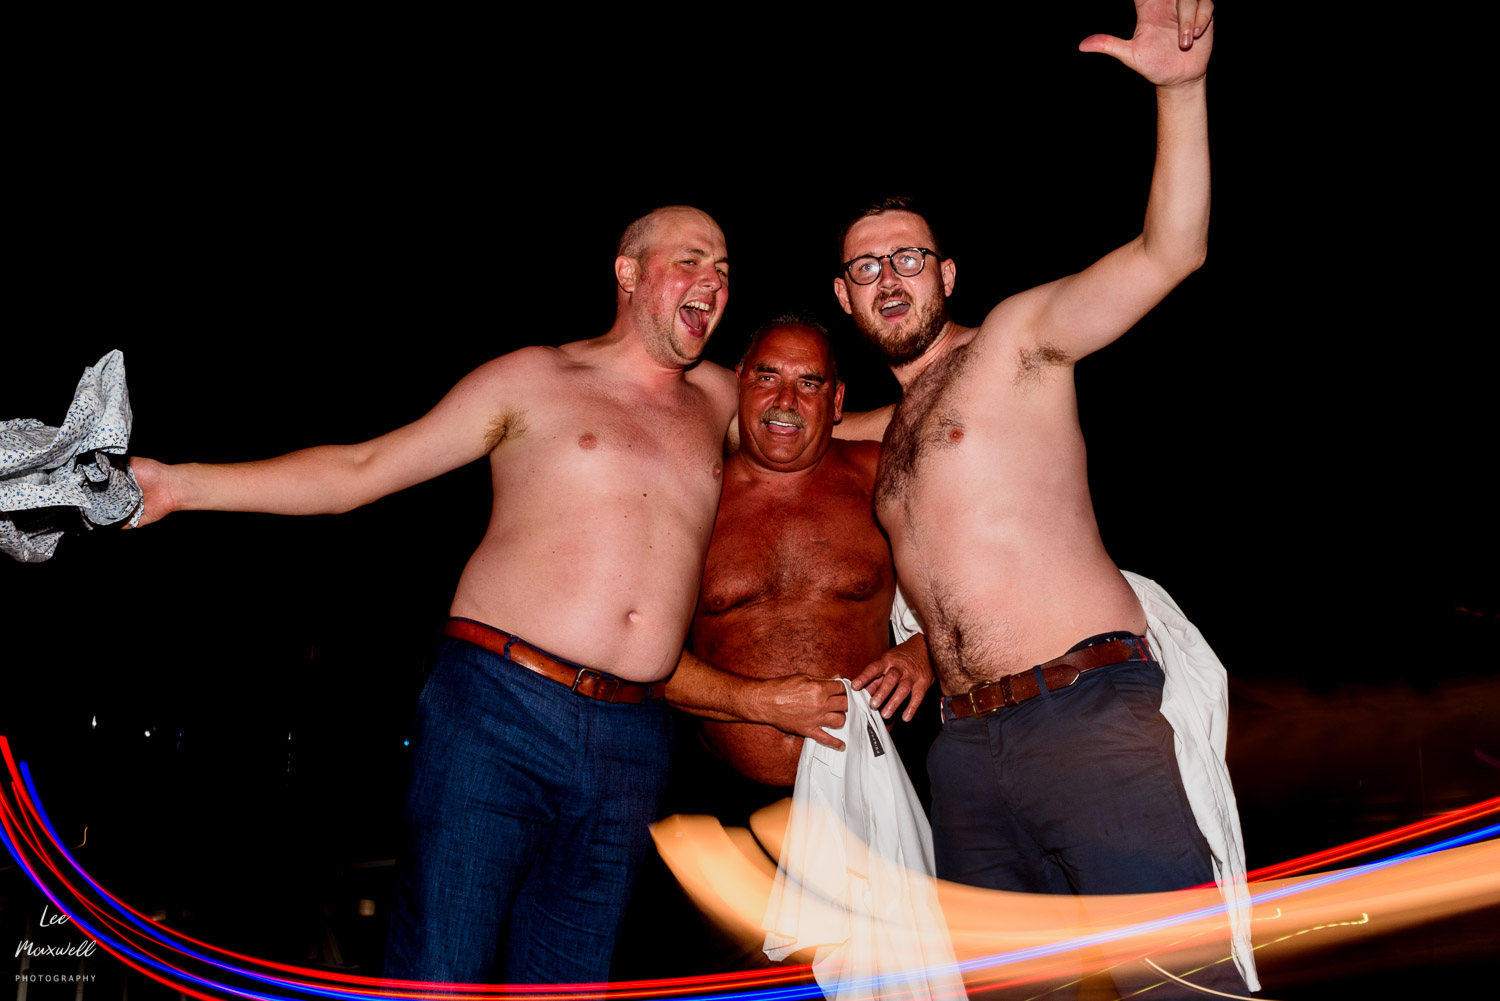 Shirts off in Kefalonia wedding